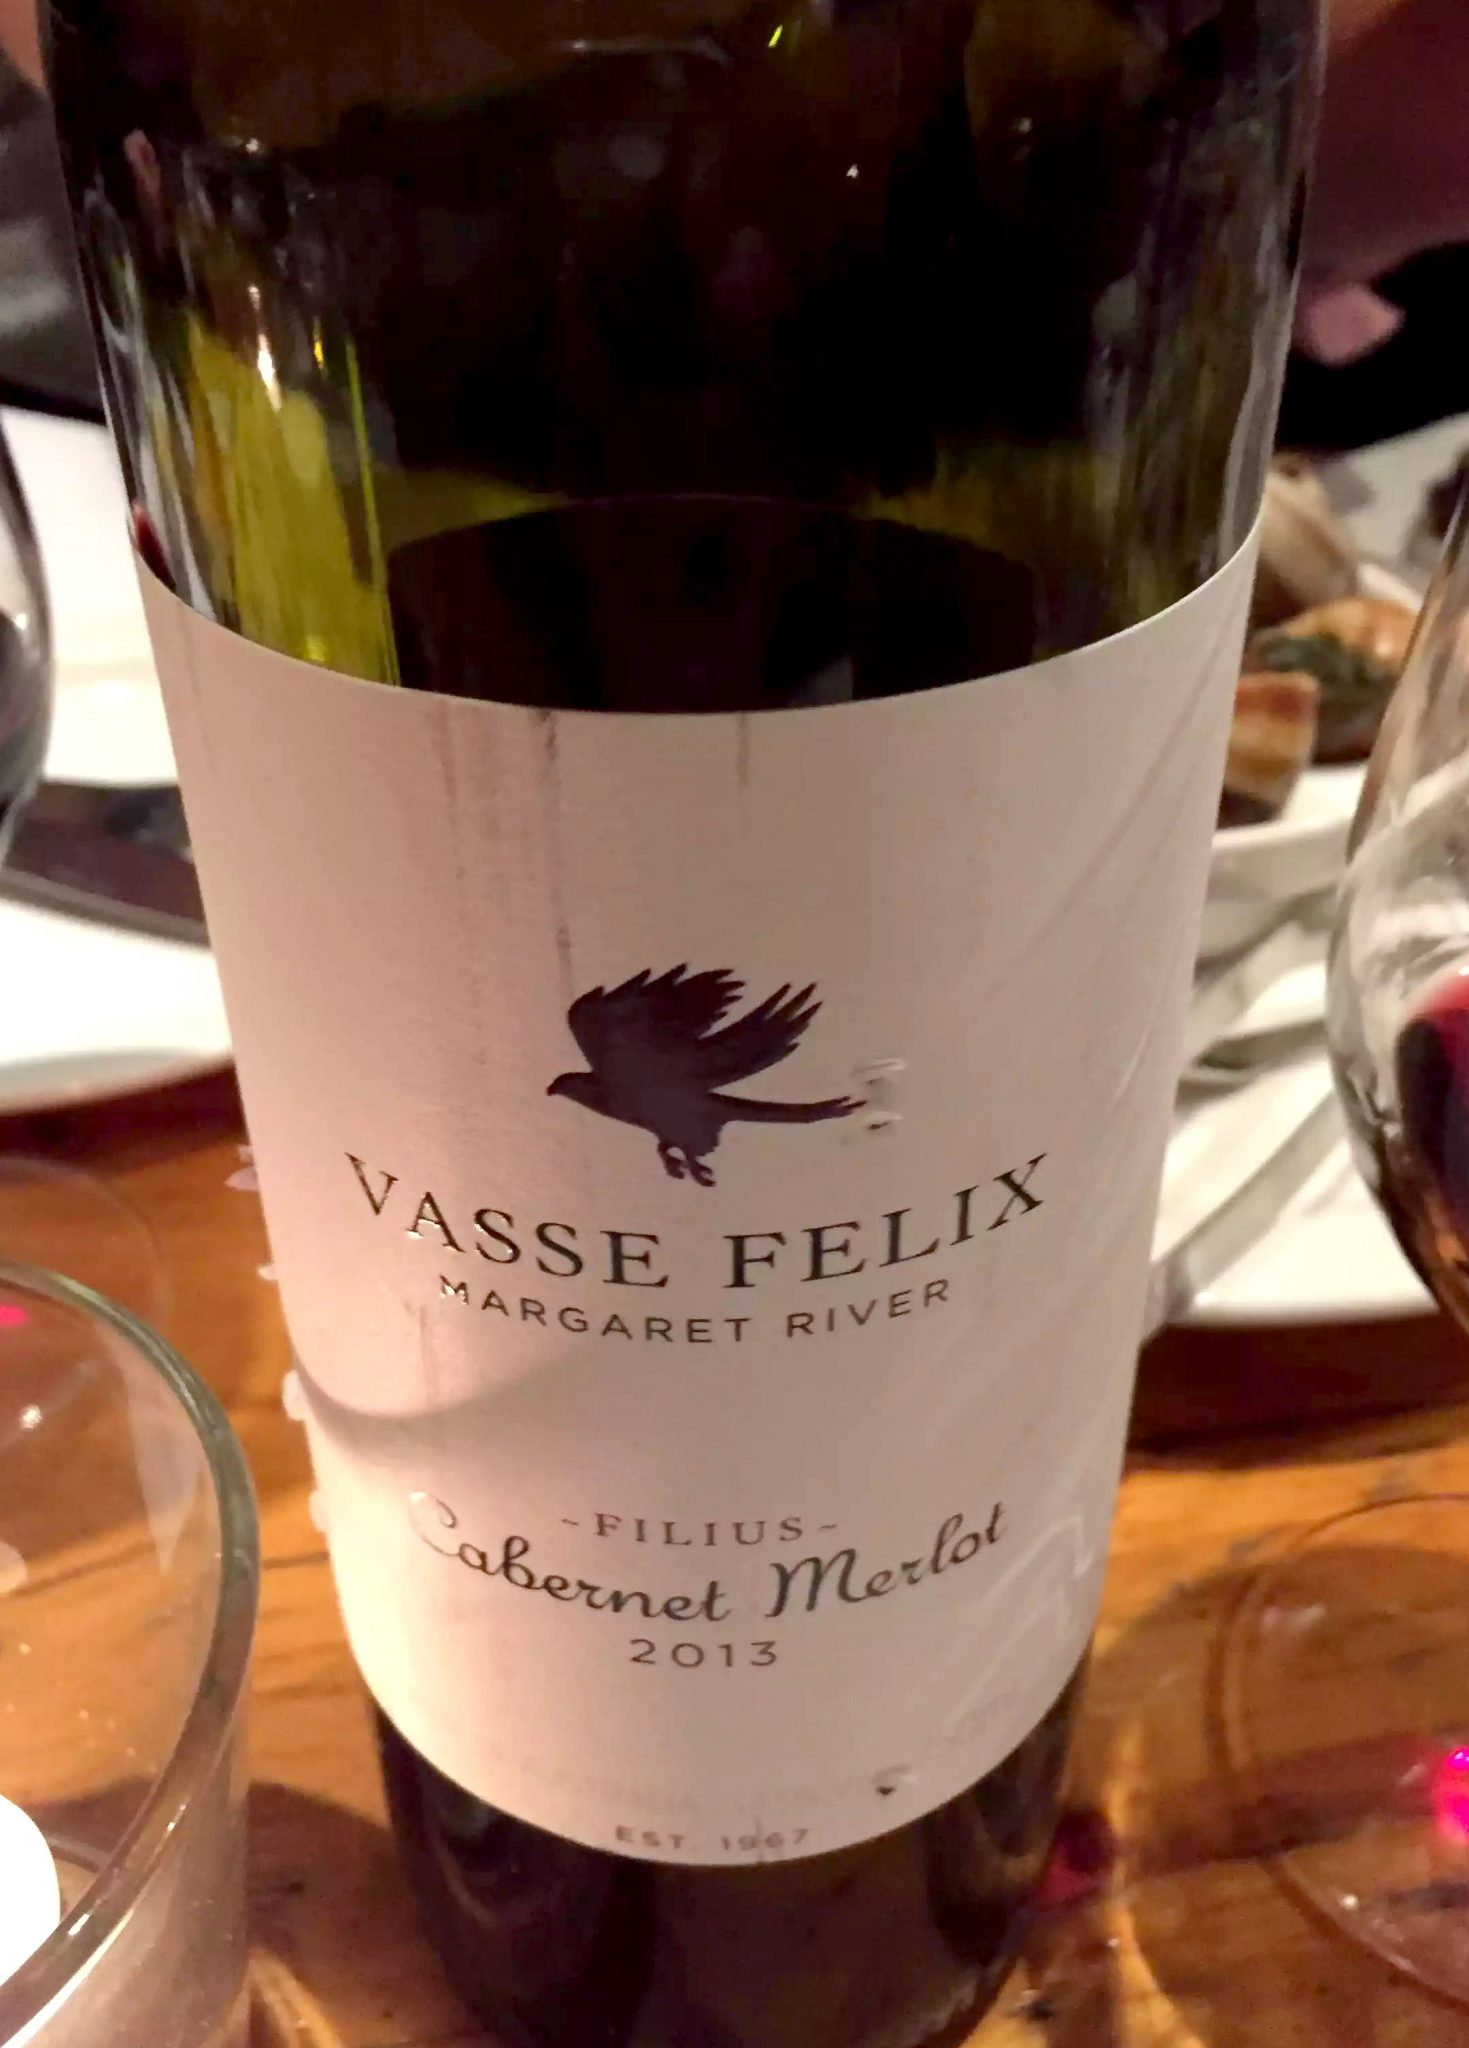 Cork & Bottle Leicester Square London Birthday Dinner Restaurant Wine Vasse Felix Cabernet Merlot